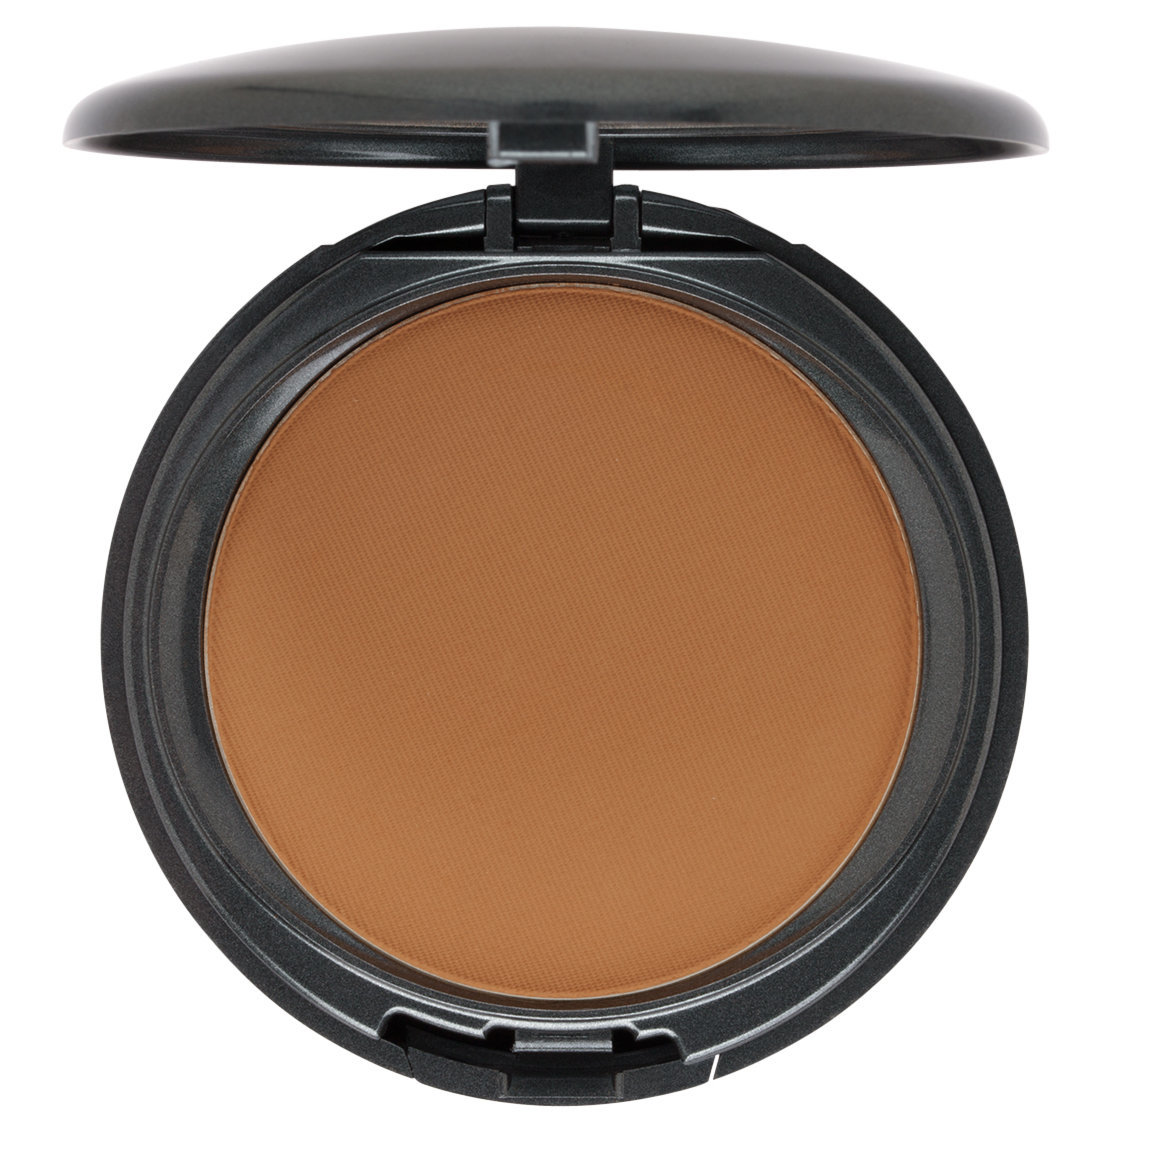 COVER | FX Pressed Mineral Foundation G90 alternative view 1 - product swatch.